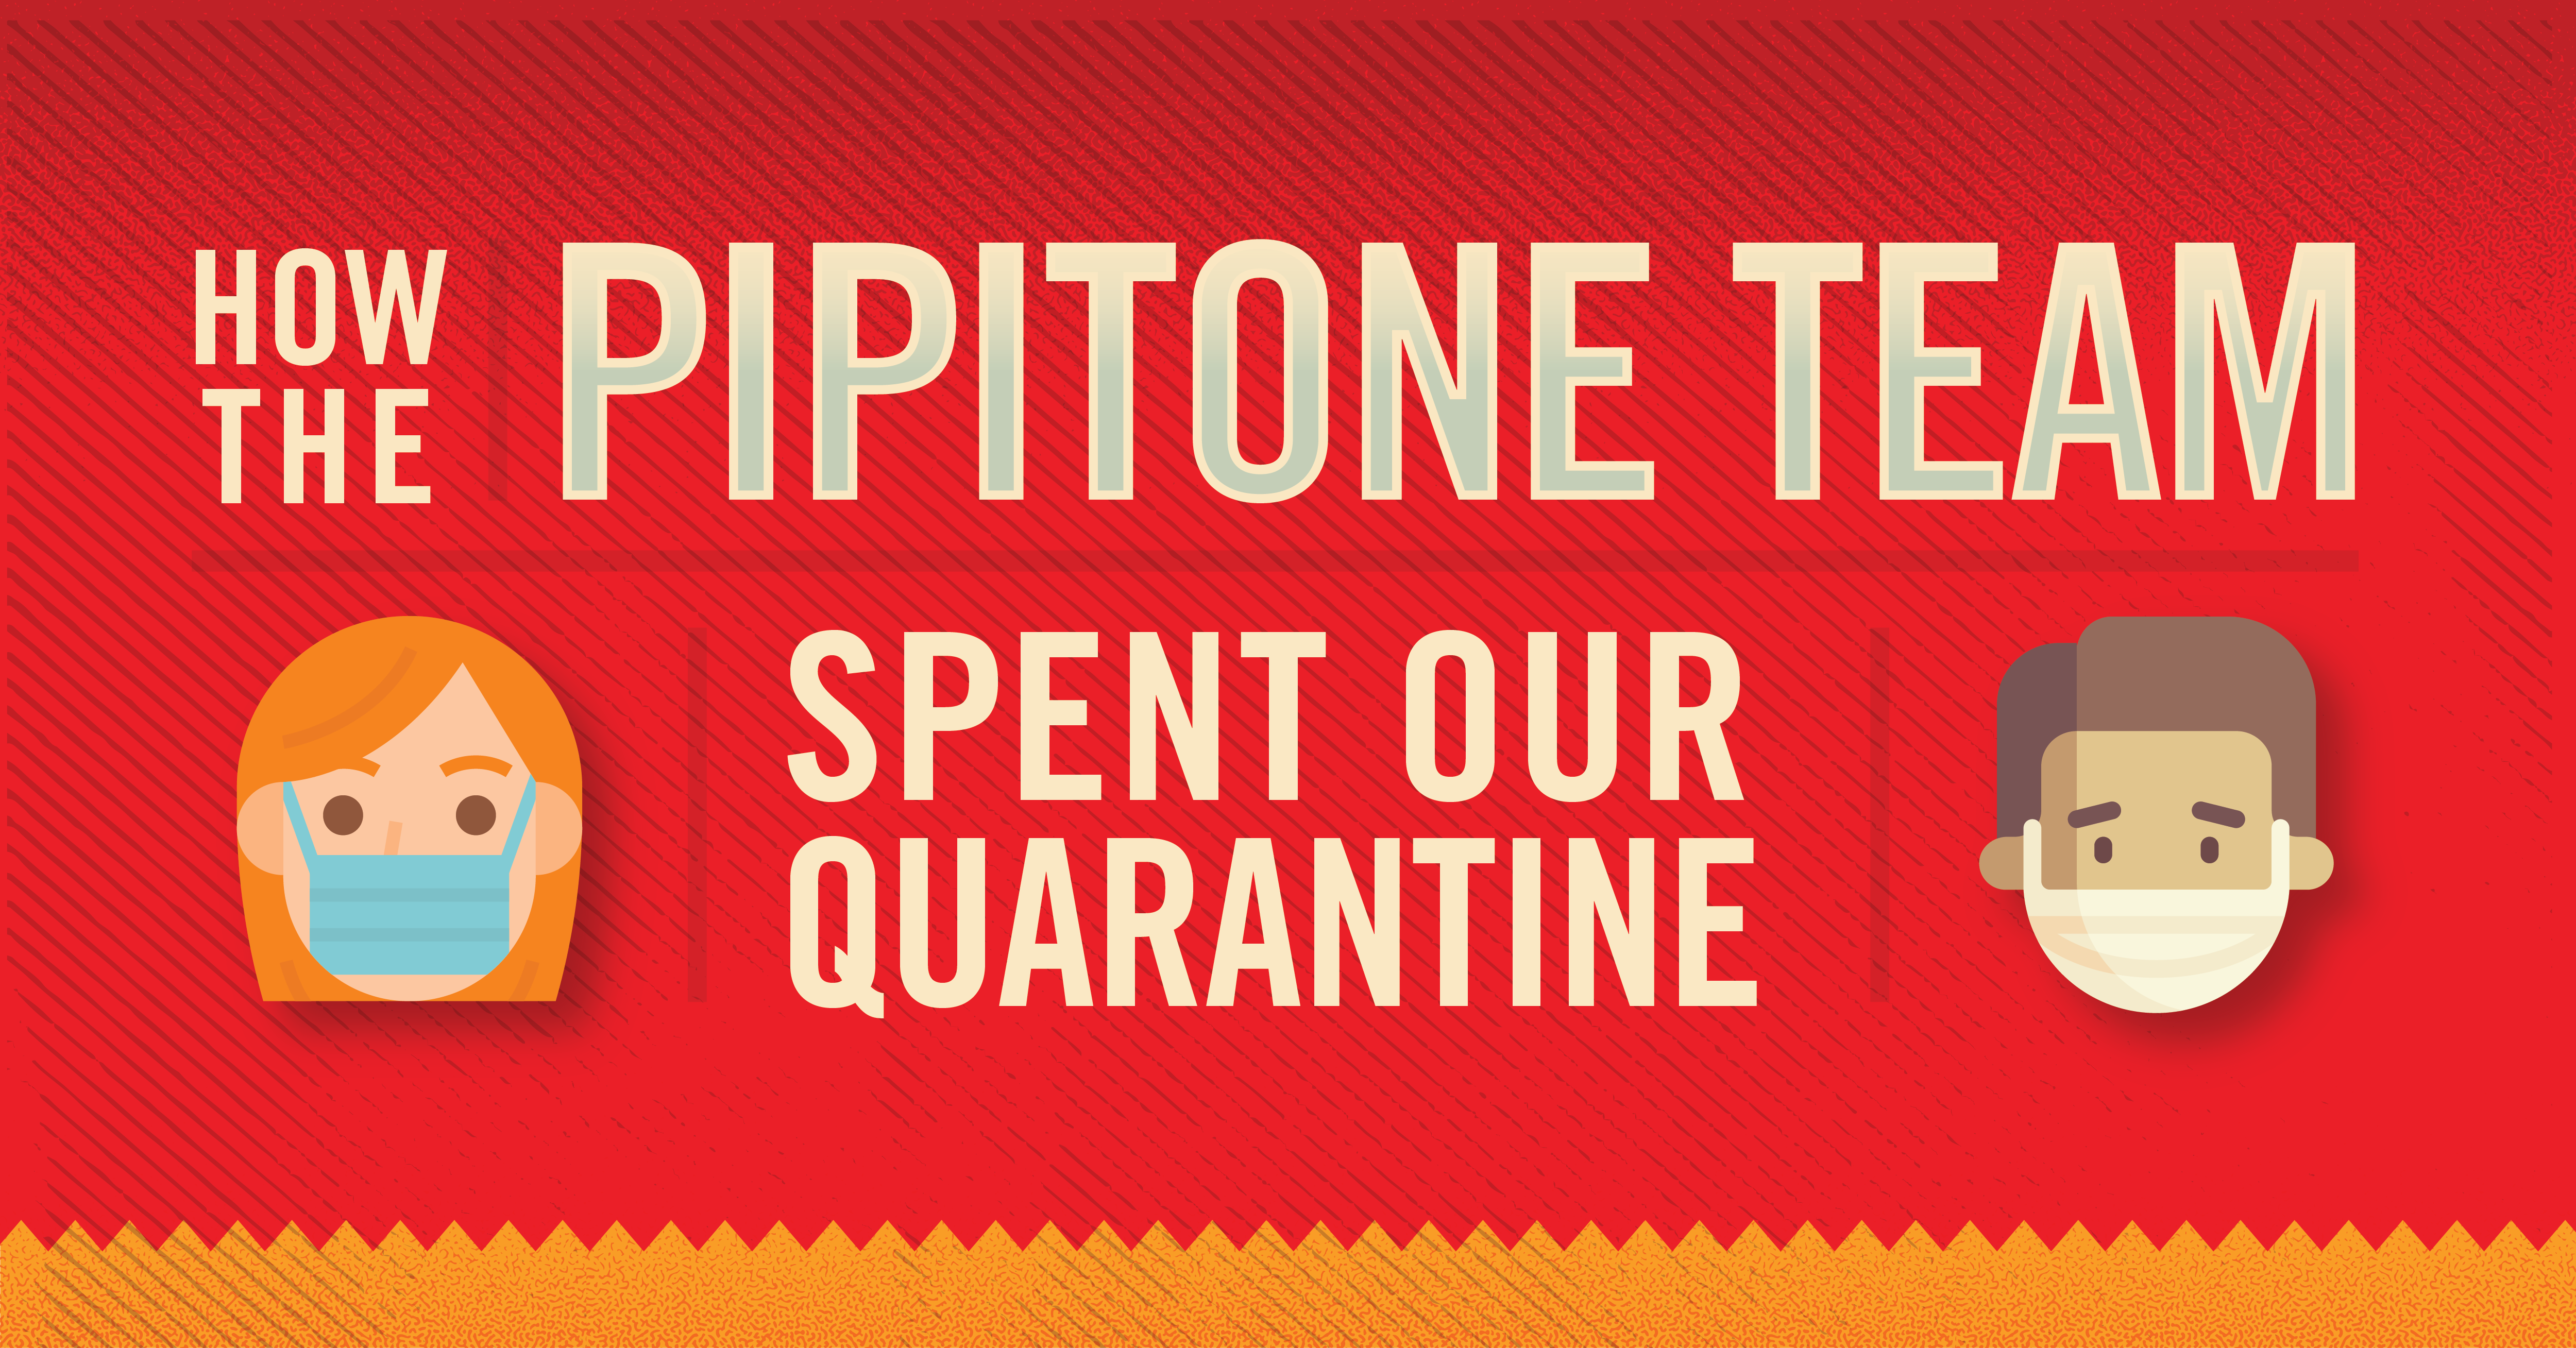 How the Pipitone Team Spent Our Quarantine